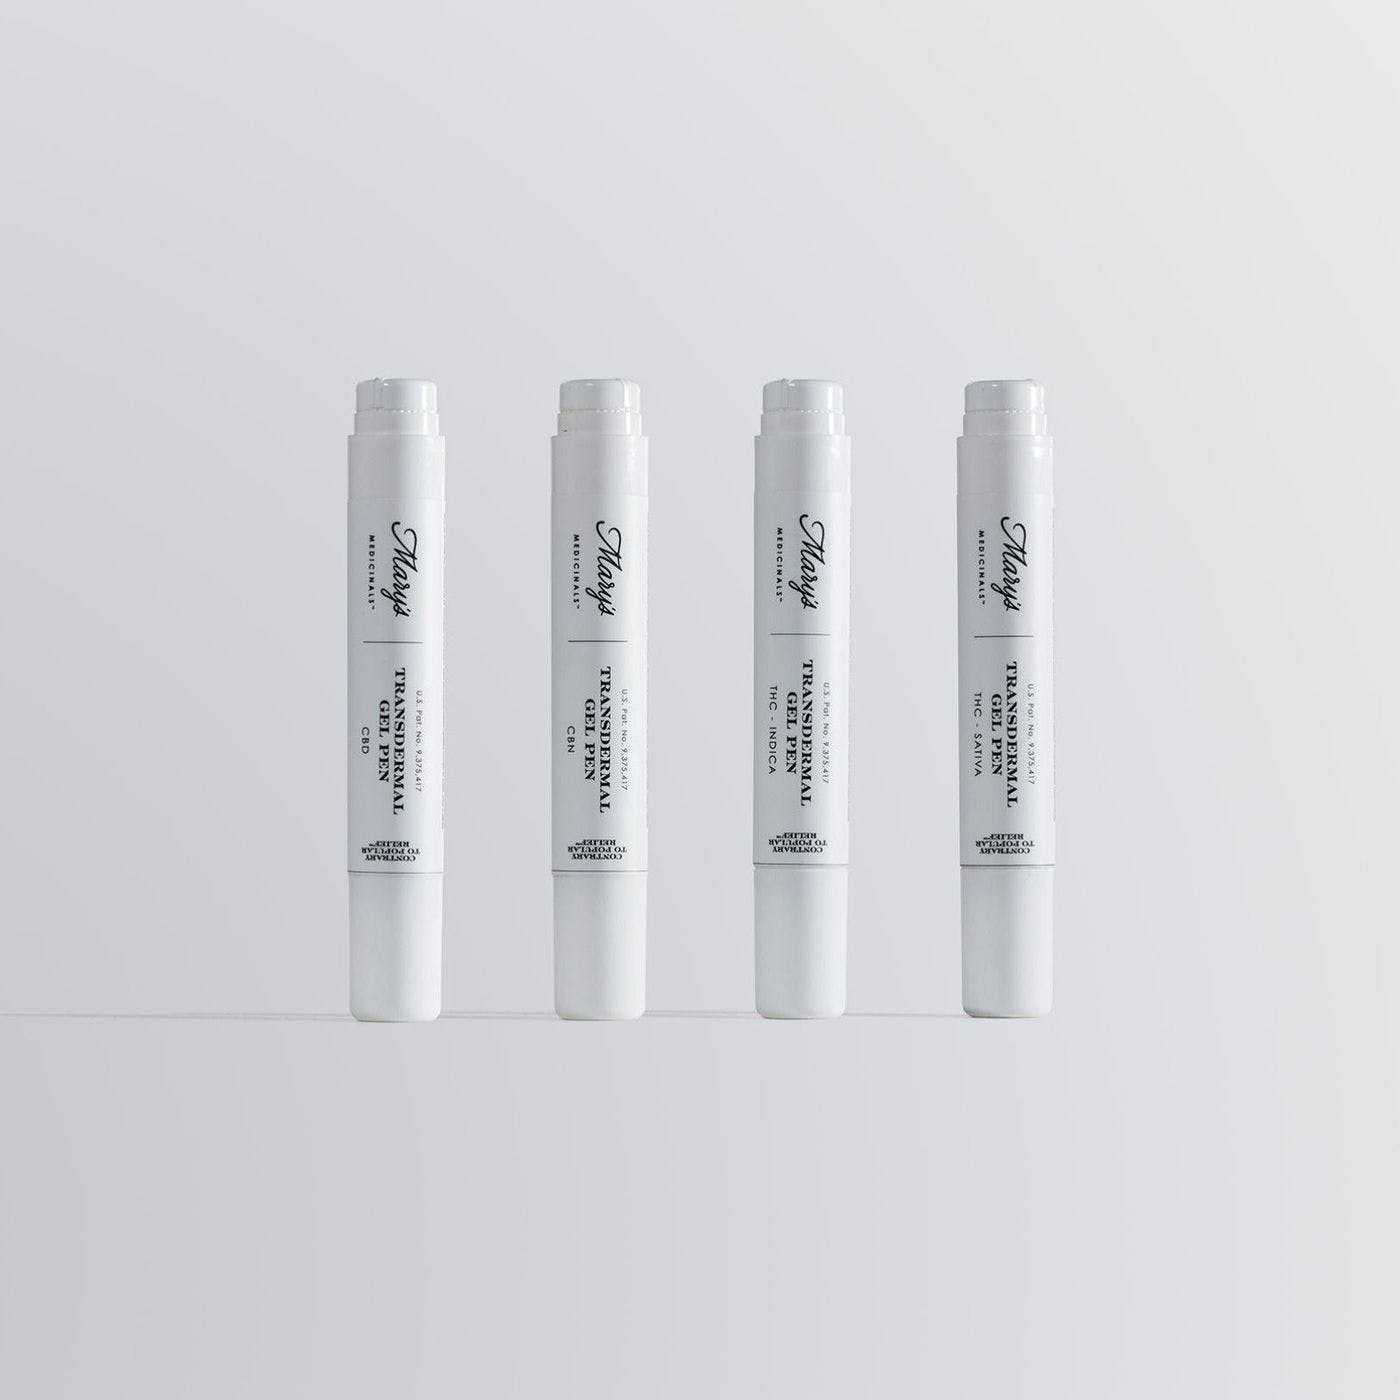 topicals-indica-gel-pen-by-marys-medicinals